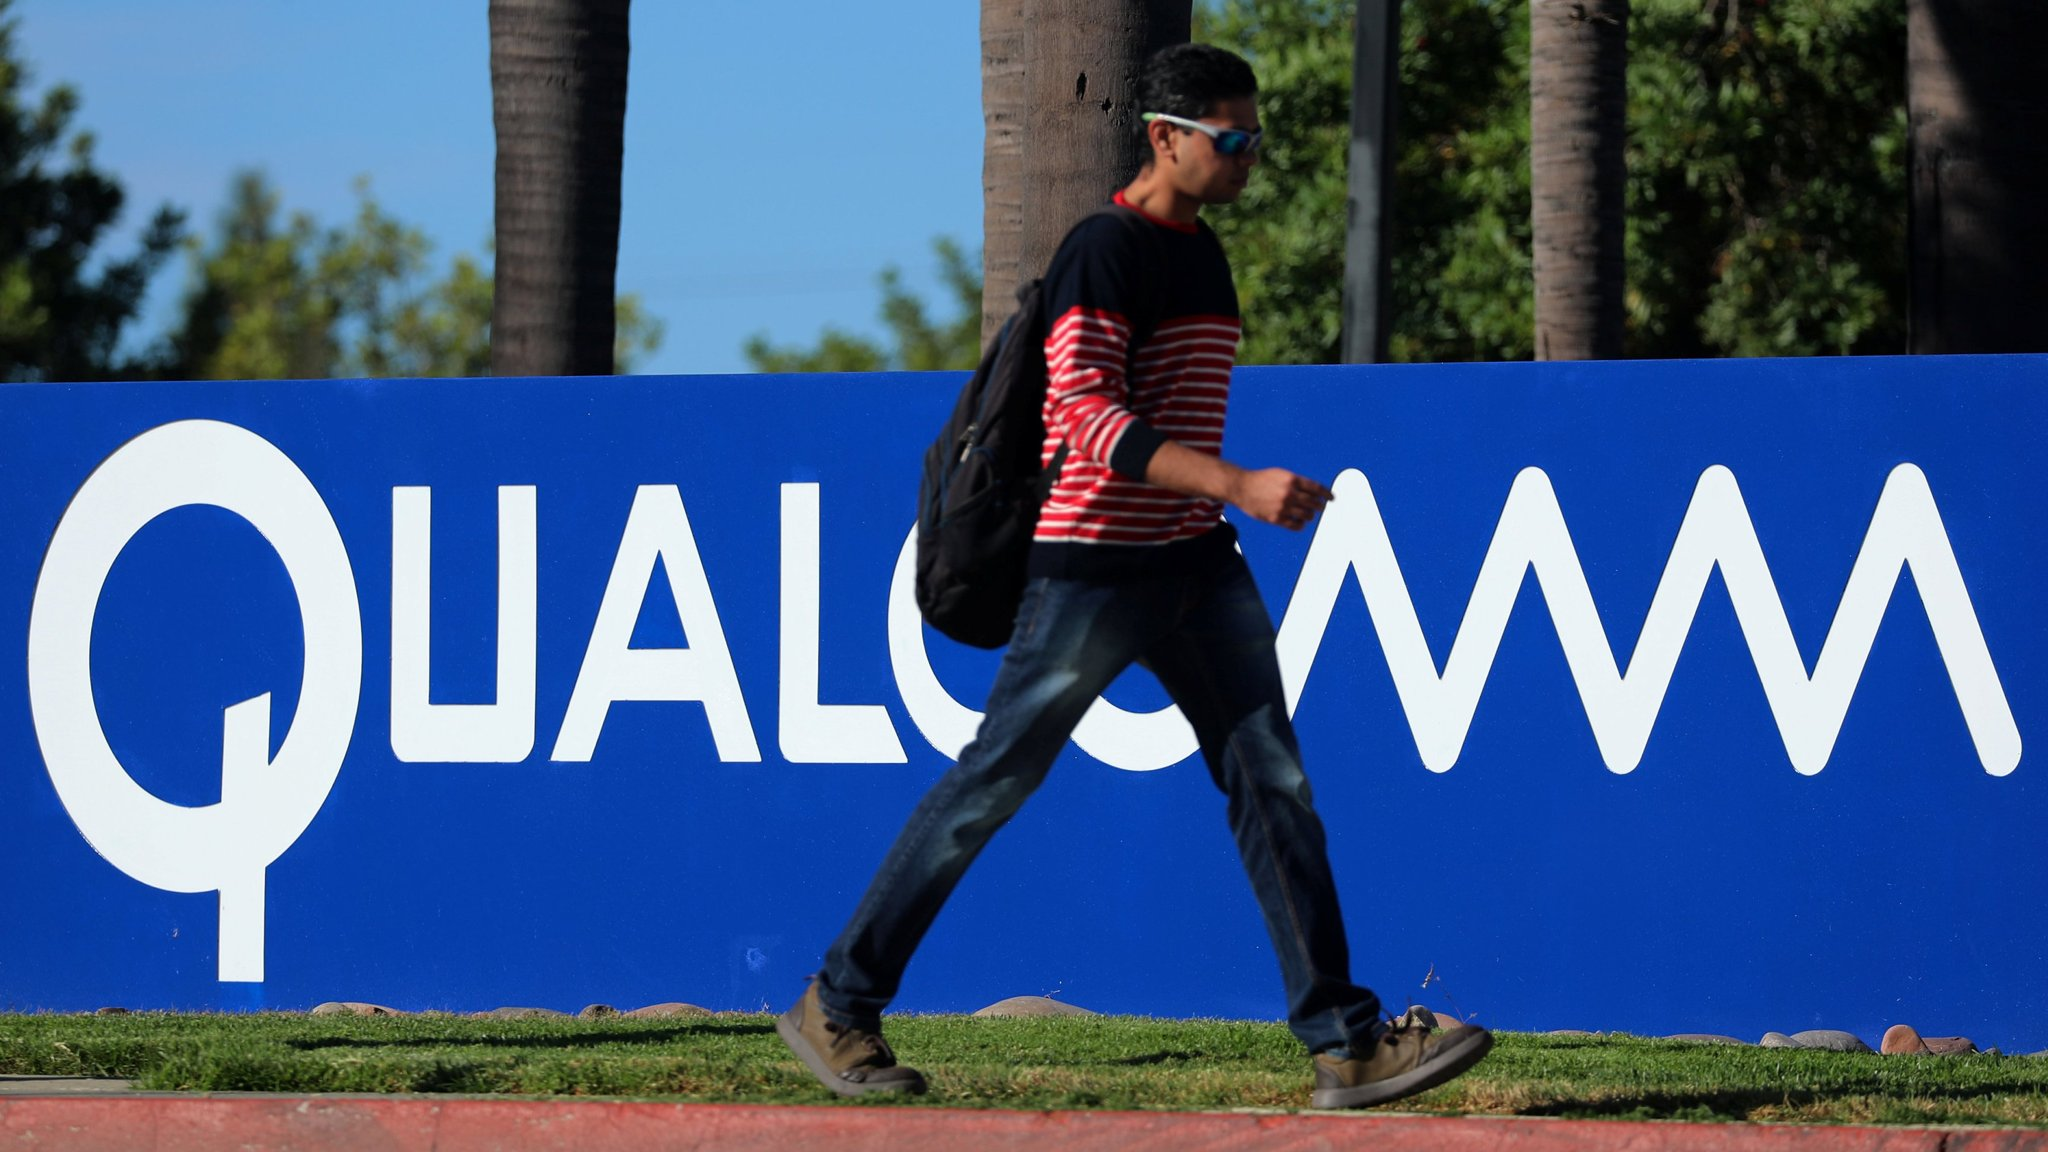 Qualcomm fined €997m by EU competition watchdog